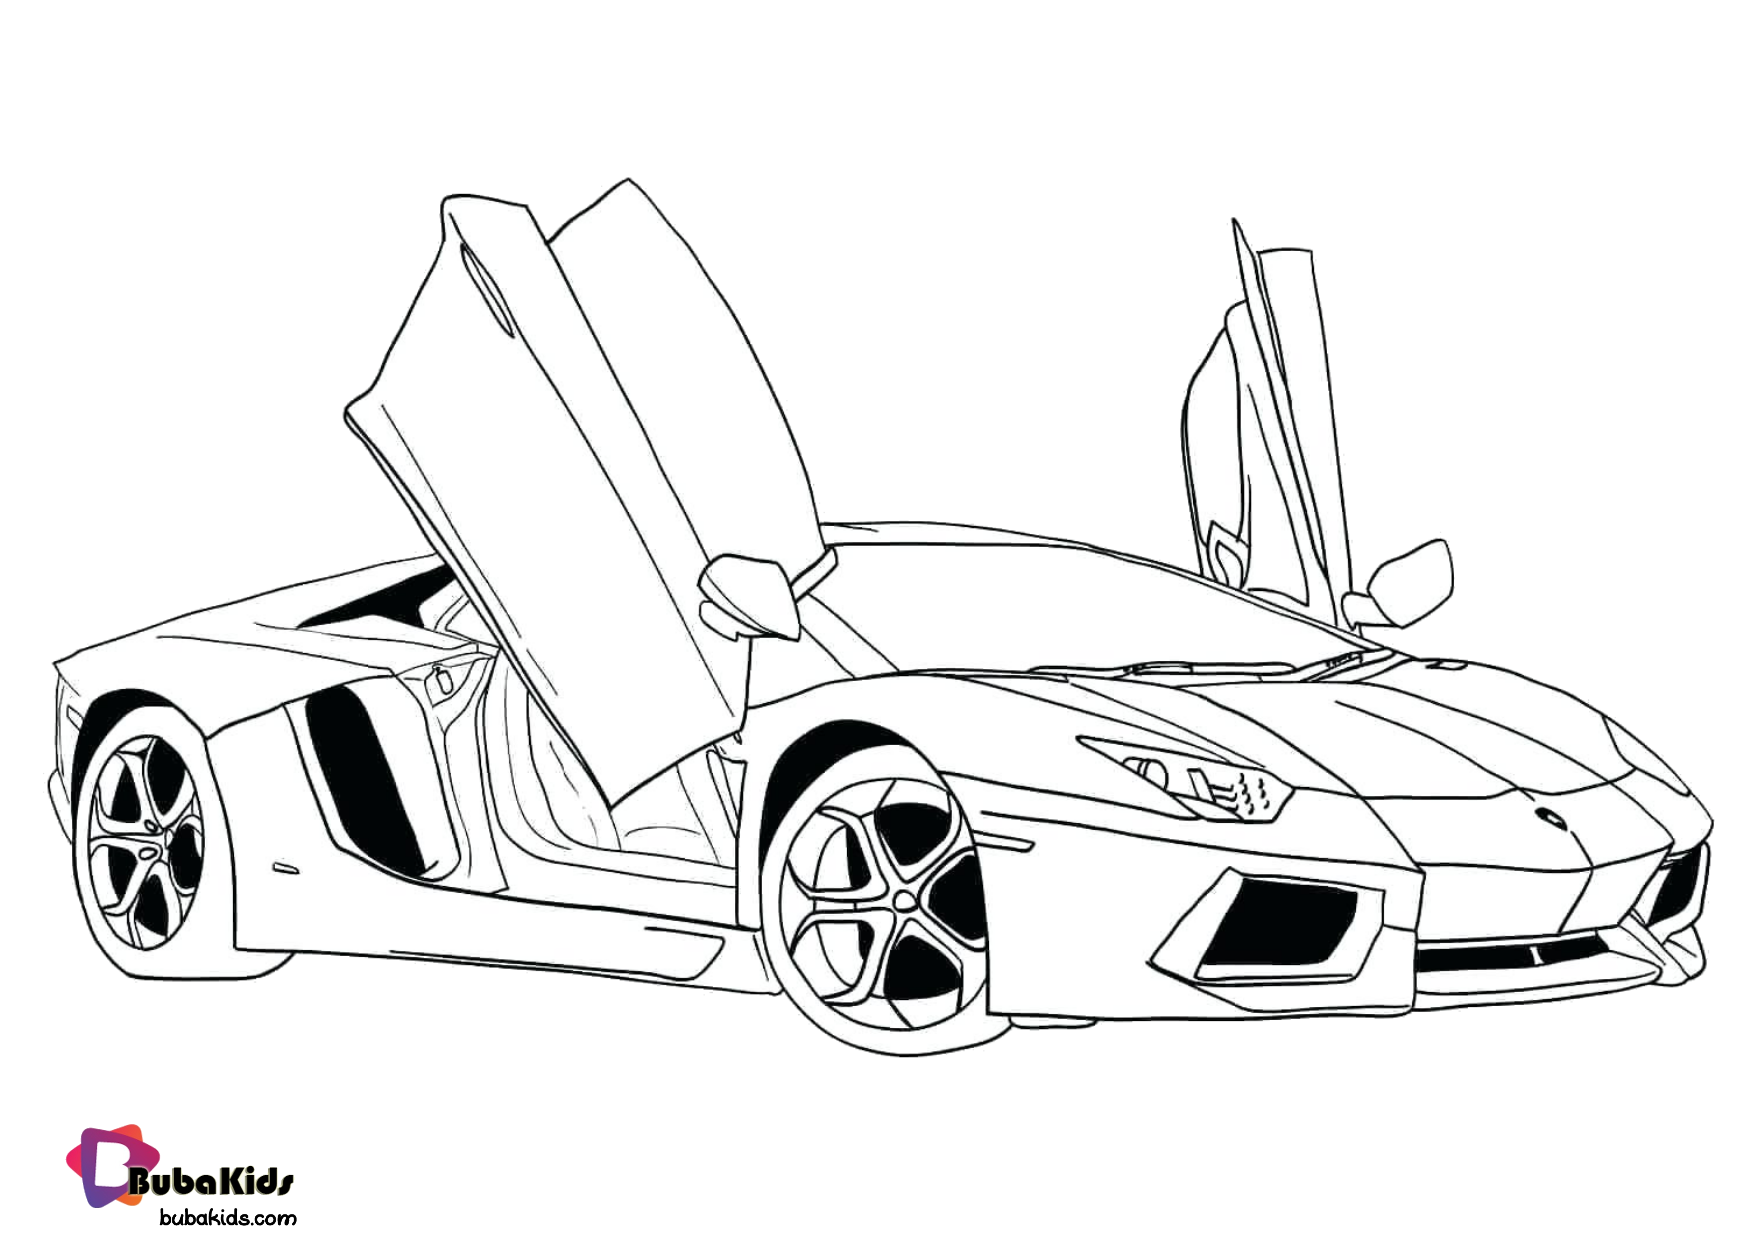 Free Download Super Car Coloring Pages For Kids Collection Of Cartoon Coloring Pages For Tee In 2020 Race Car Coloring Pages Cars Coloring Pages Sports Coloring Pages